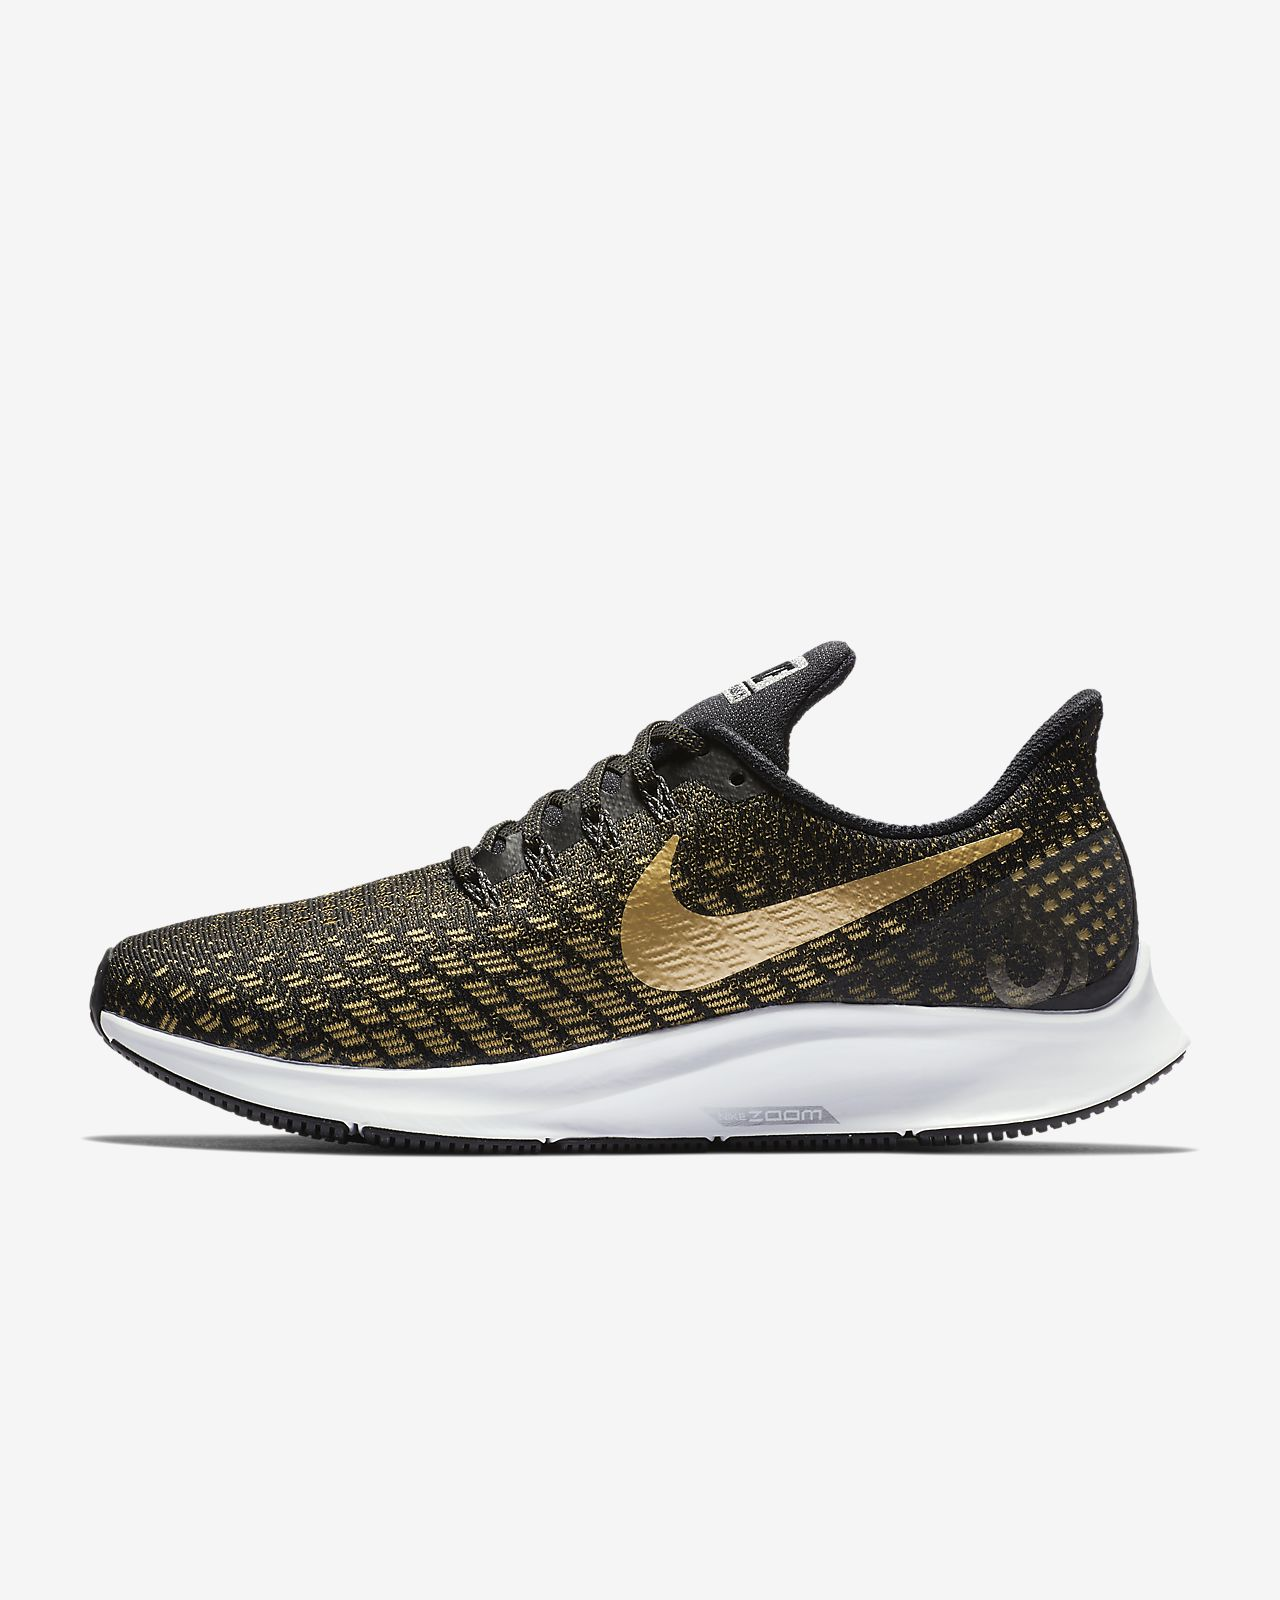 new concept 1d0b1 94f8b Nike Air Zoom Pegasus 35 Metallic Women's Running Shoe. Nike.com